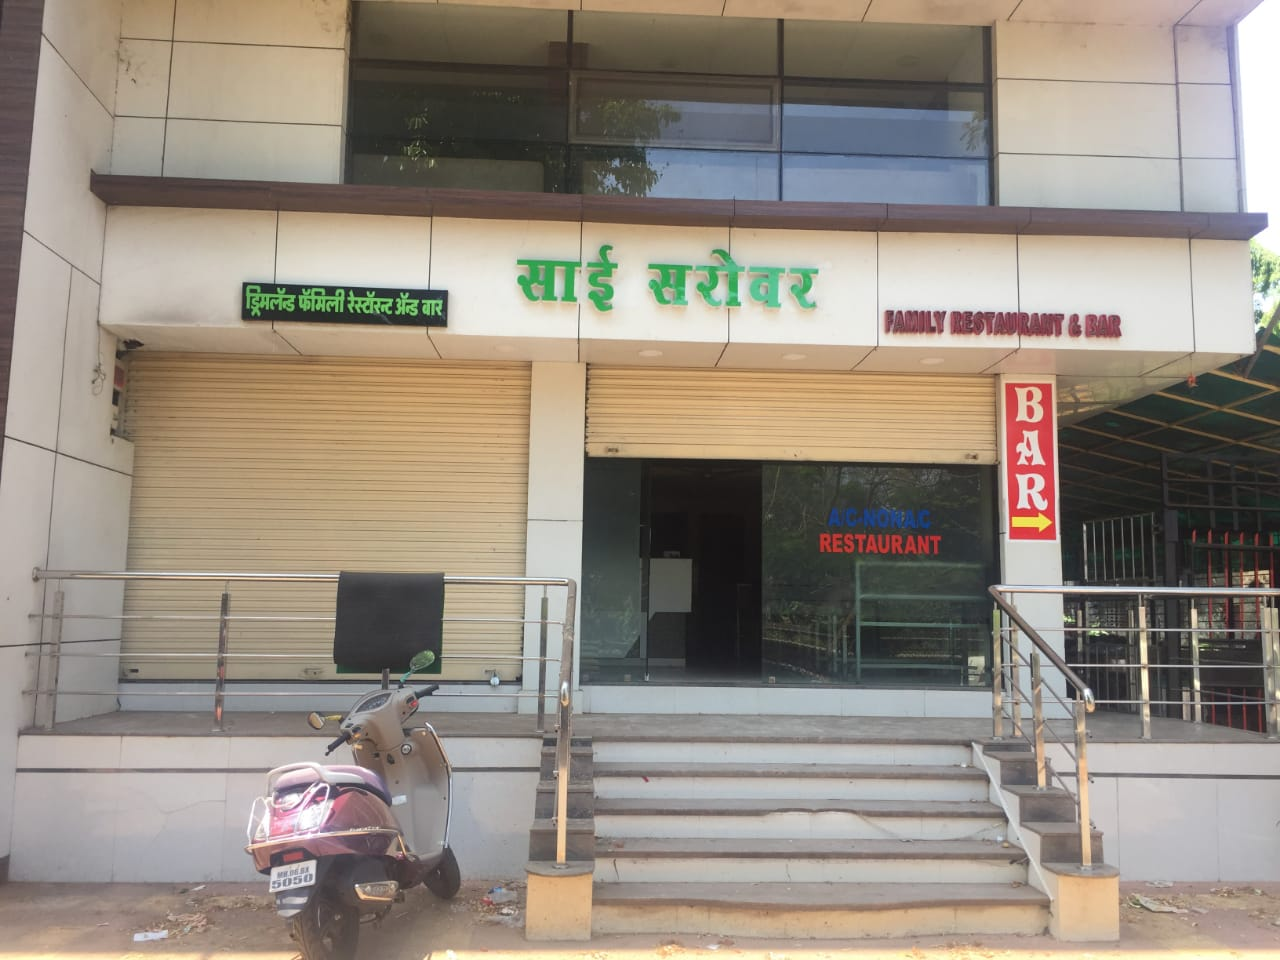 Ready Restaurant and Bar in Chiplun